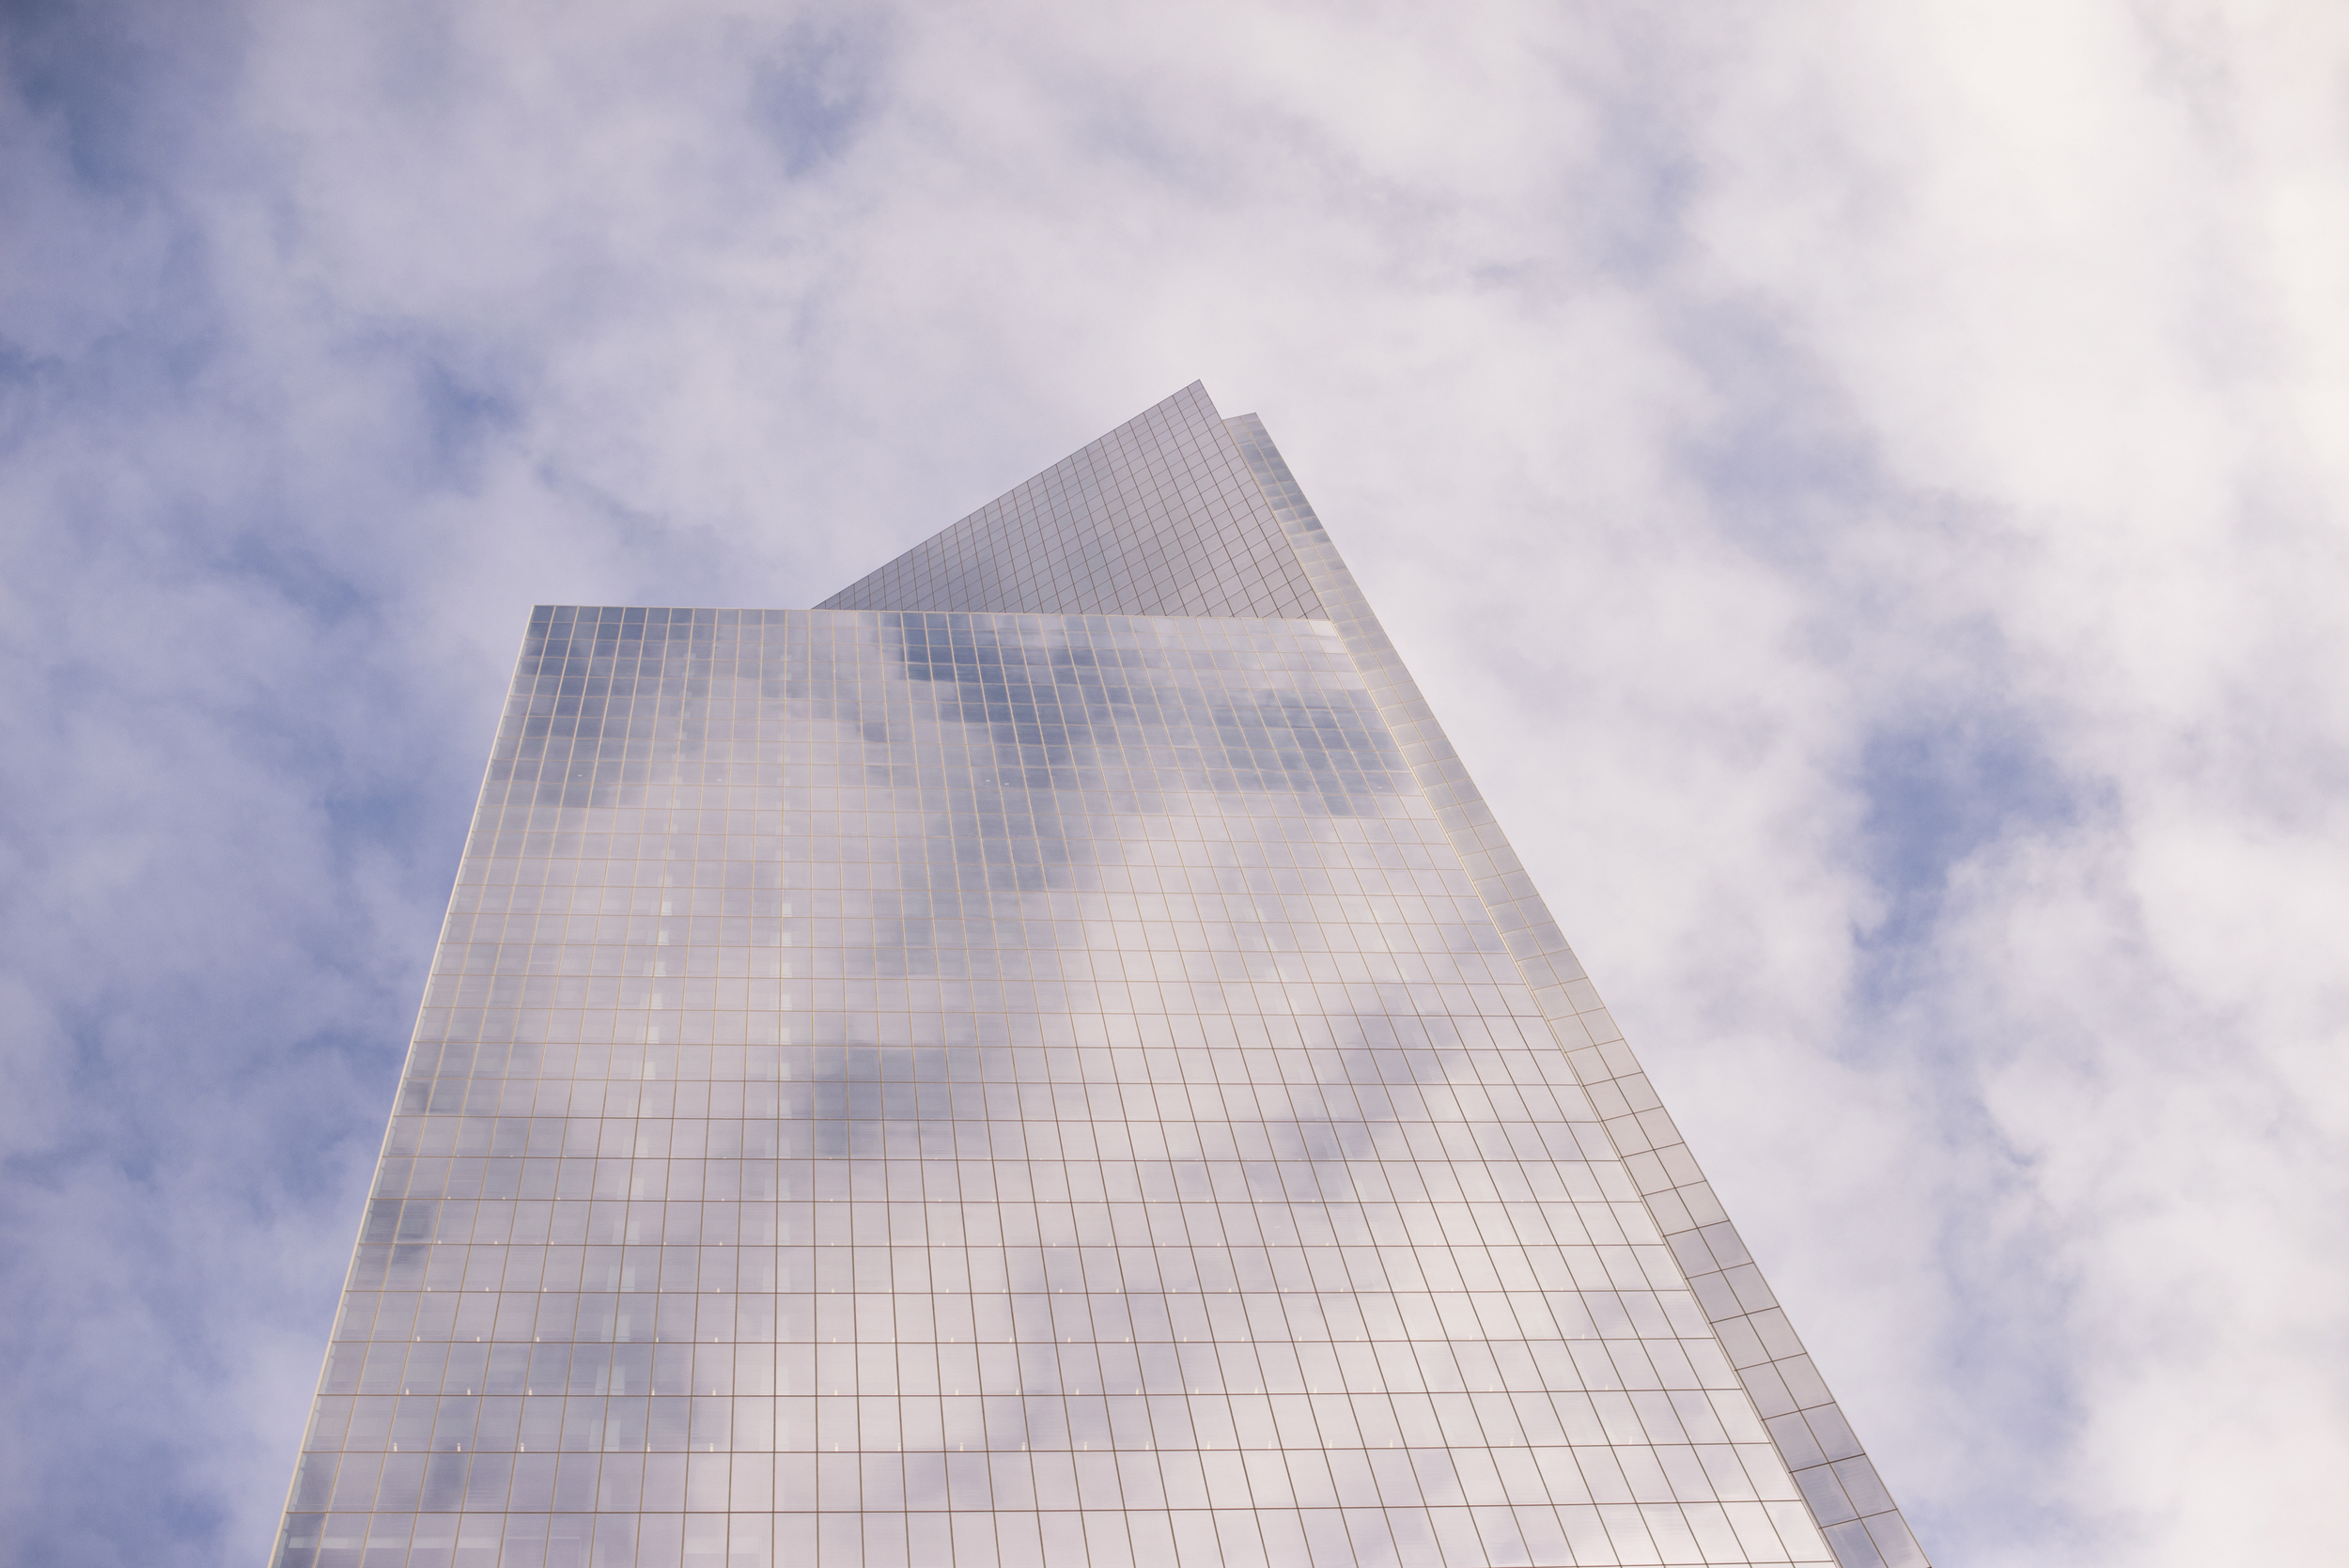 The rebuilt World Trade Center in New York City